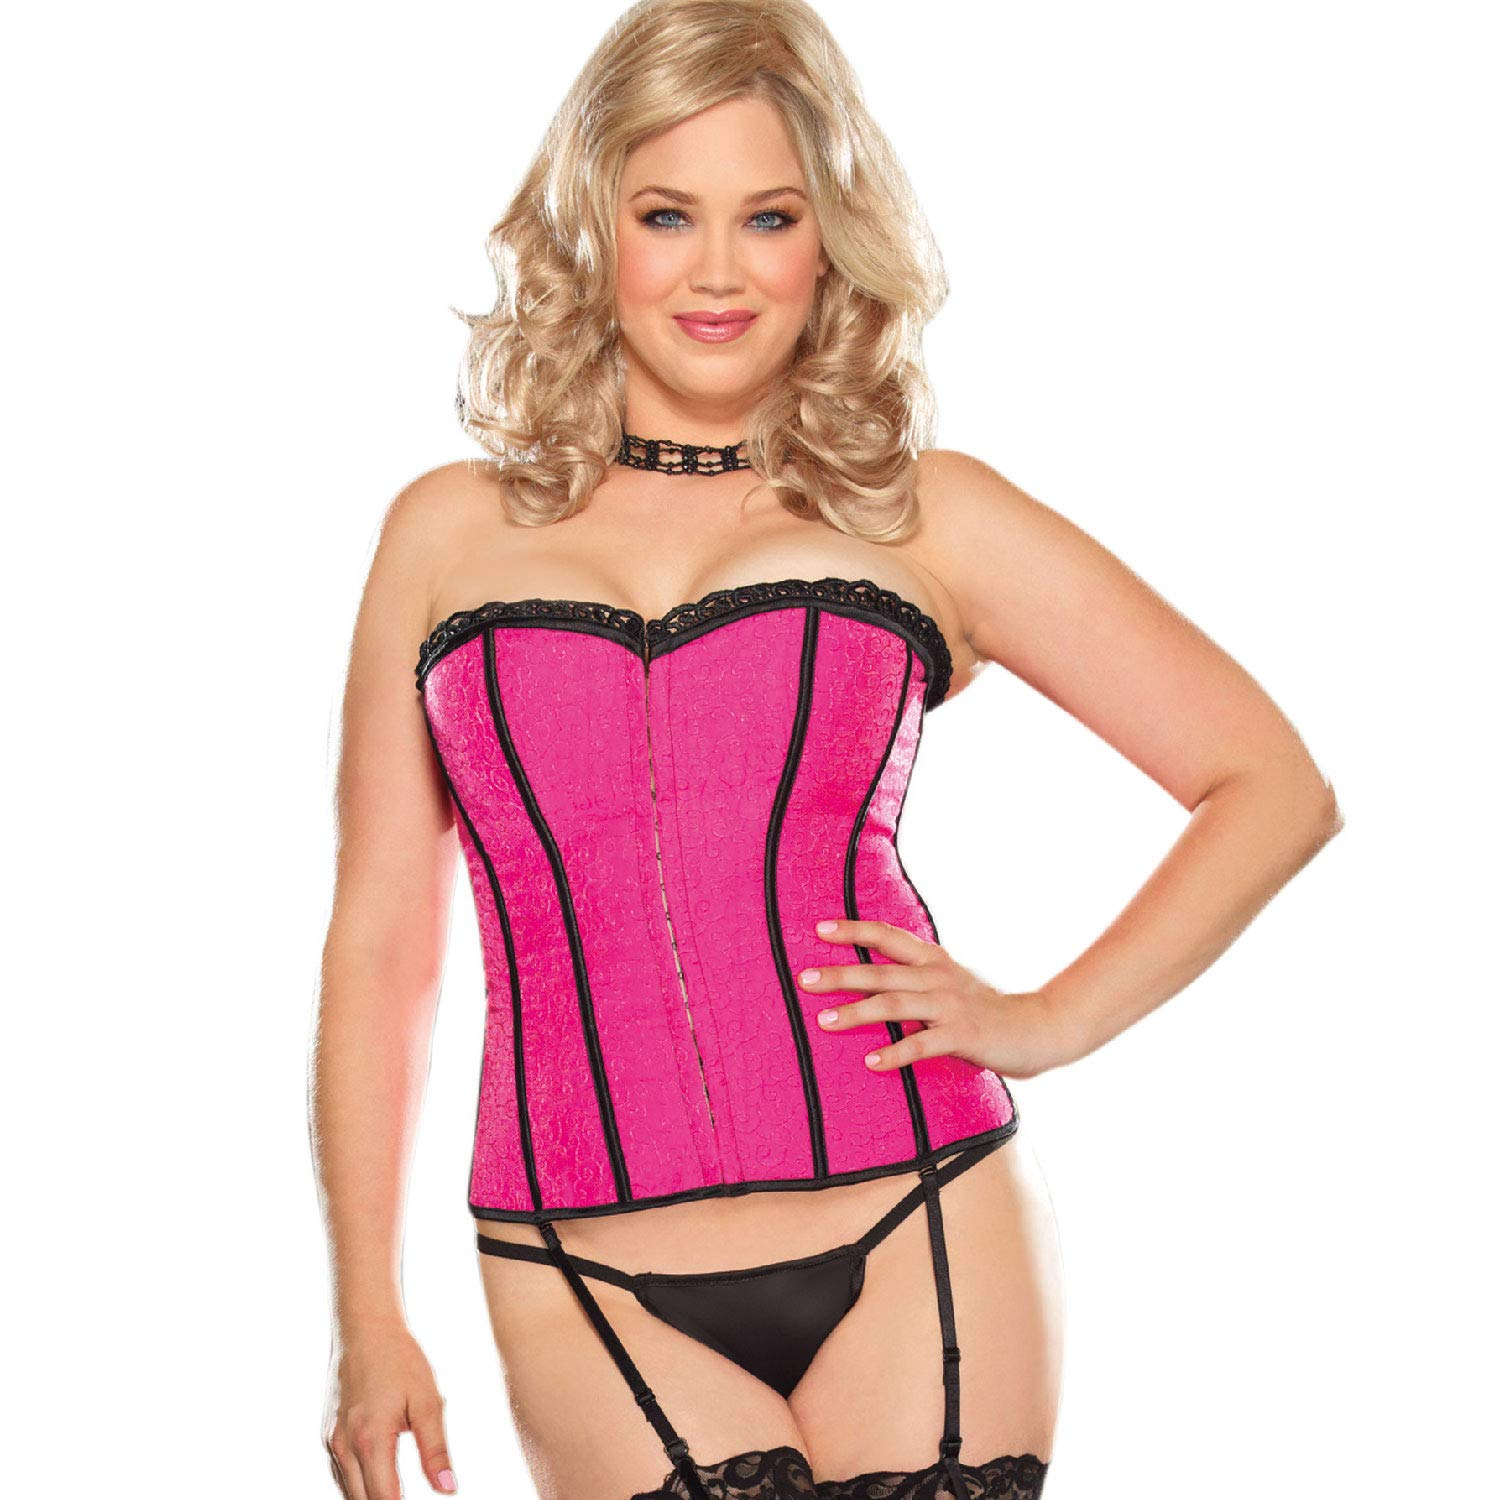 49f9a5e815 Amazon.com  Dreamgirl Women s Plus Size Fully Reversible Corset  Clothing